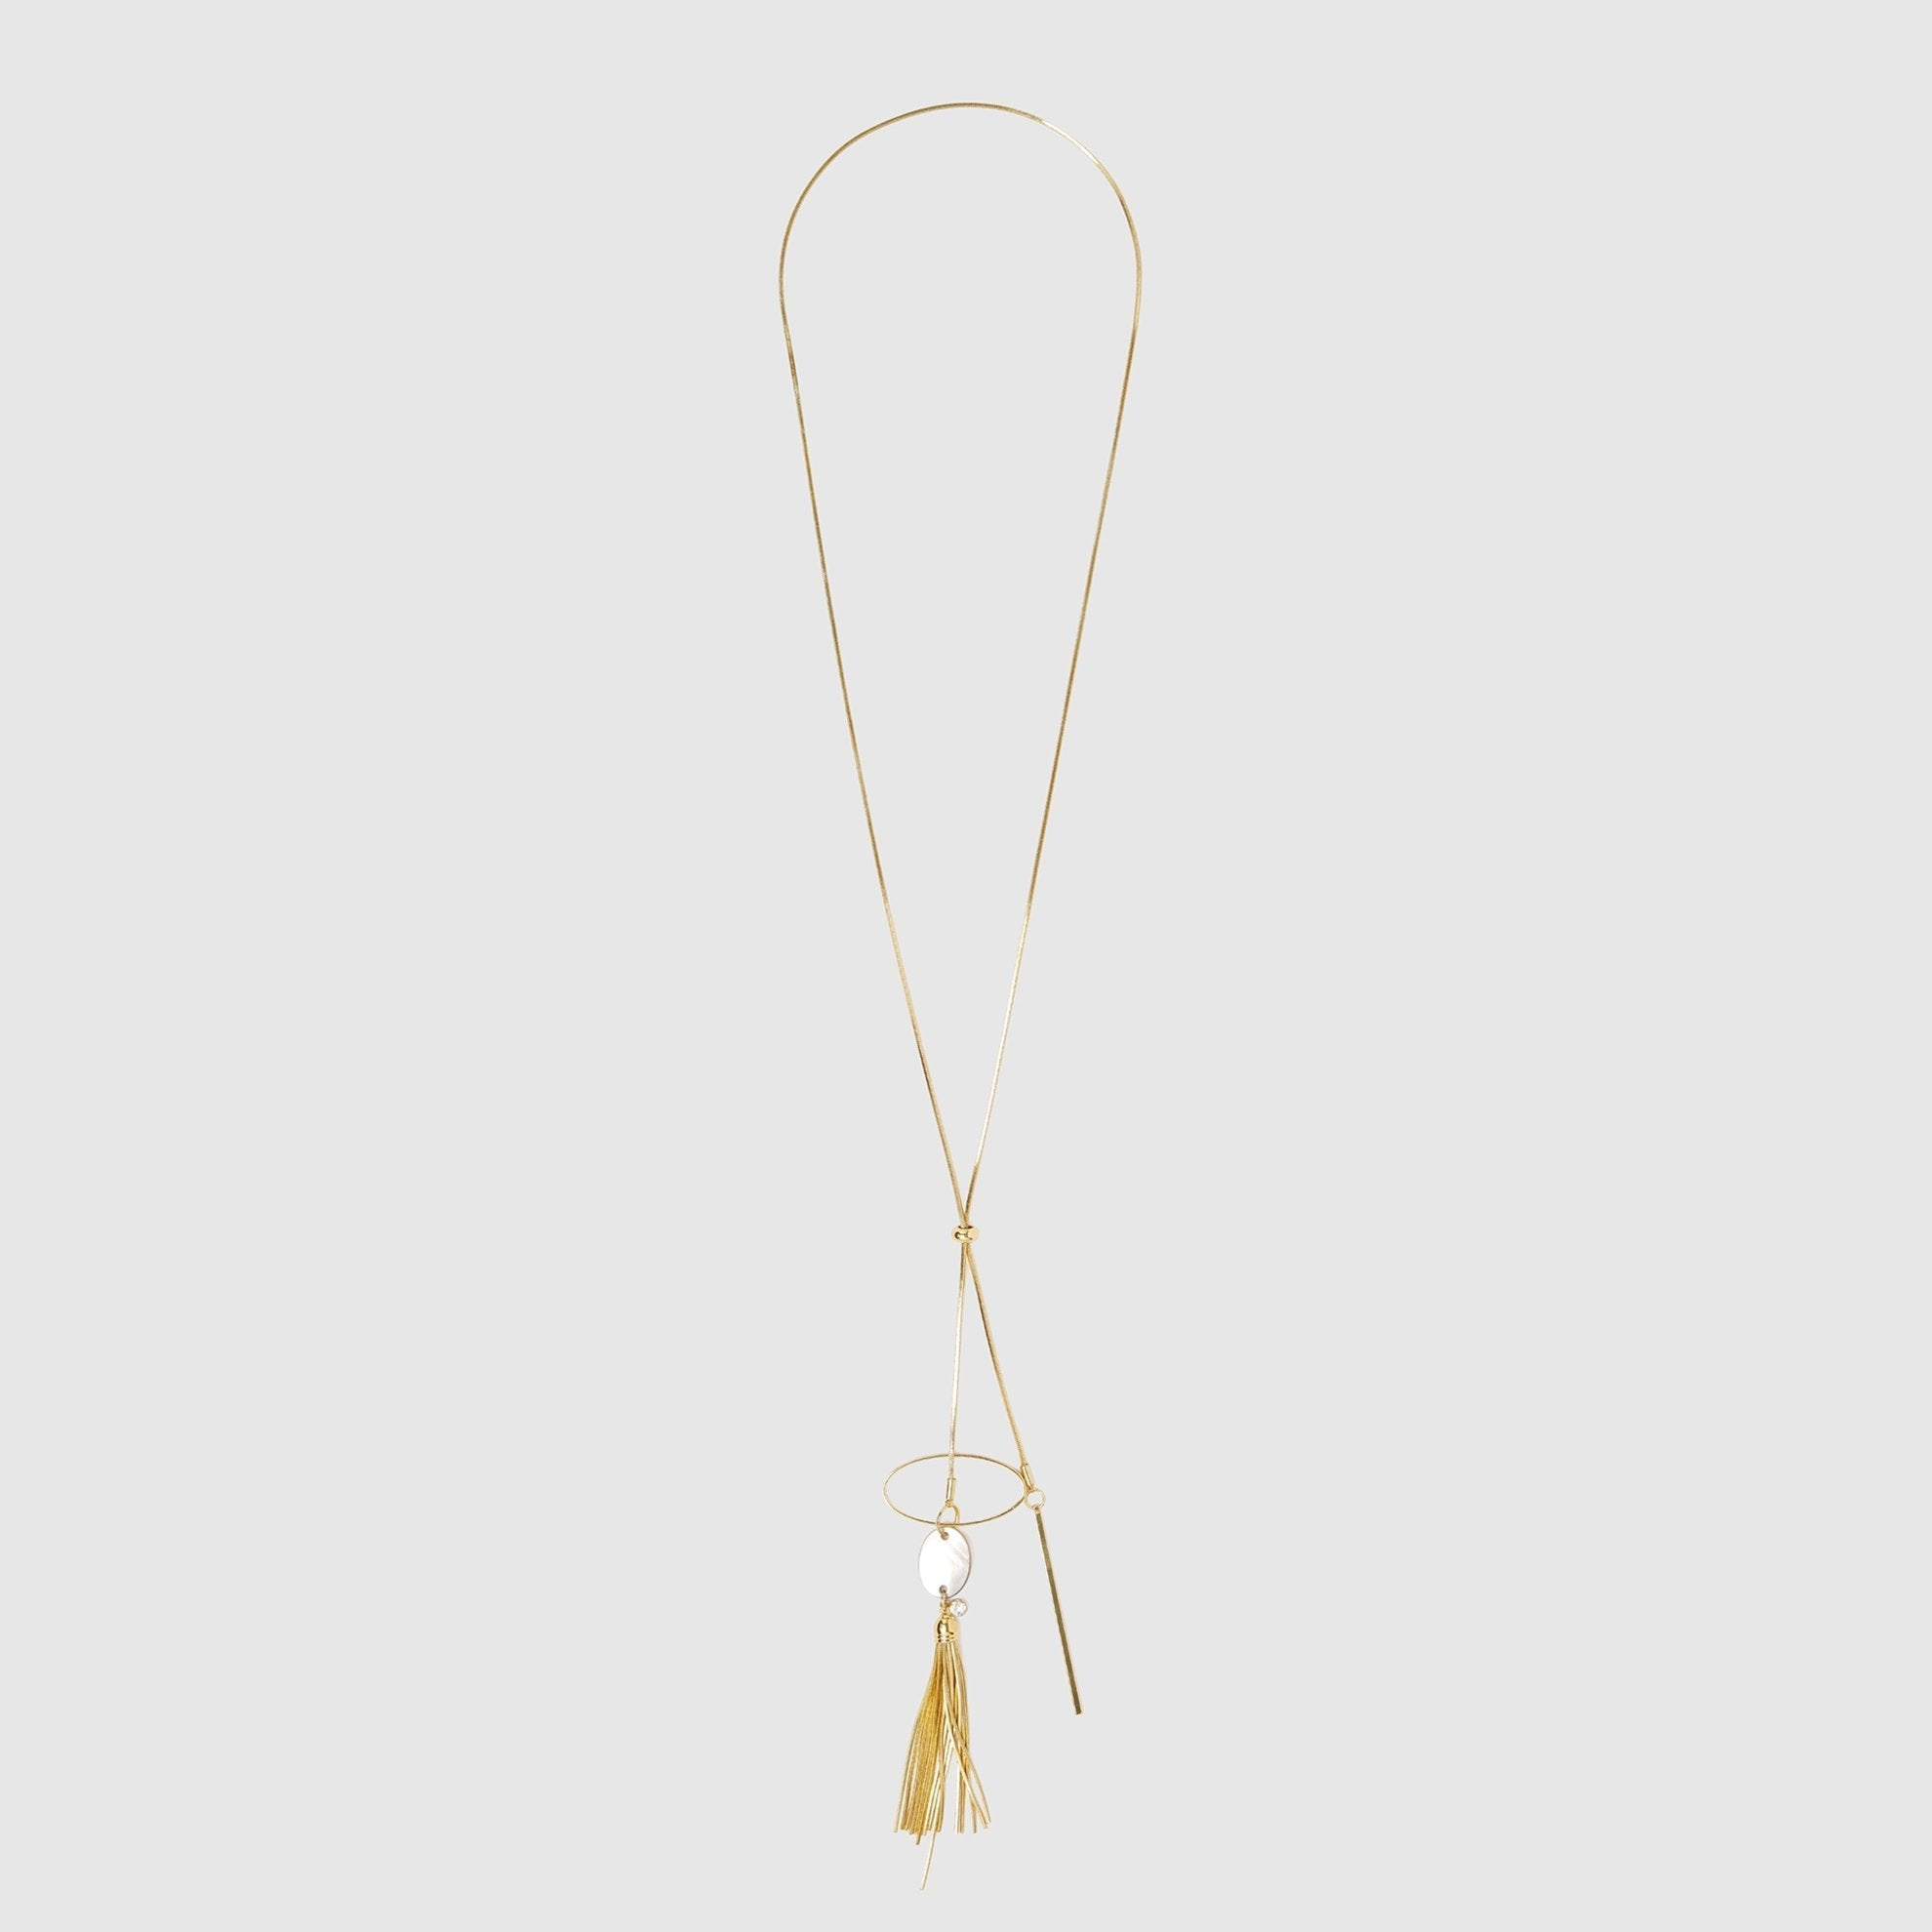 Long Chain, Golden Necklace with Tassel